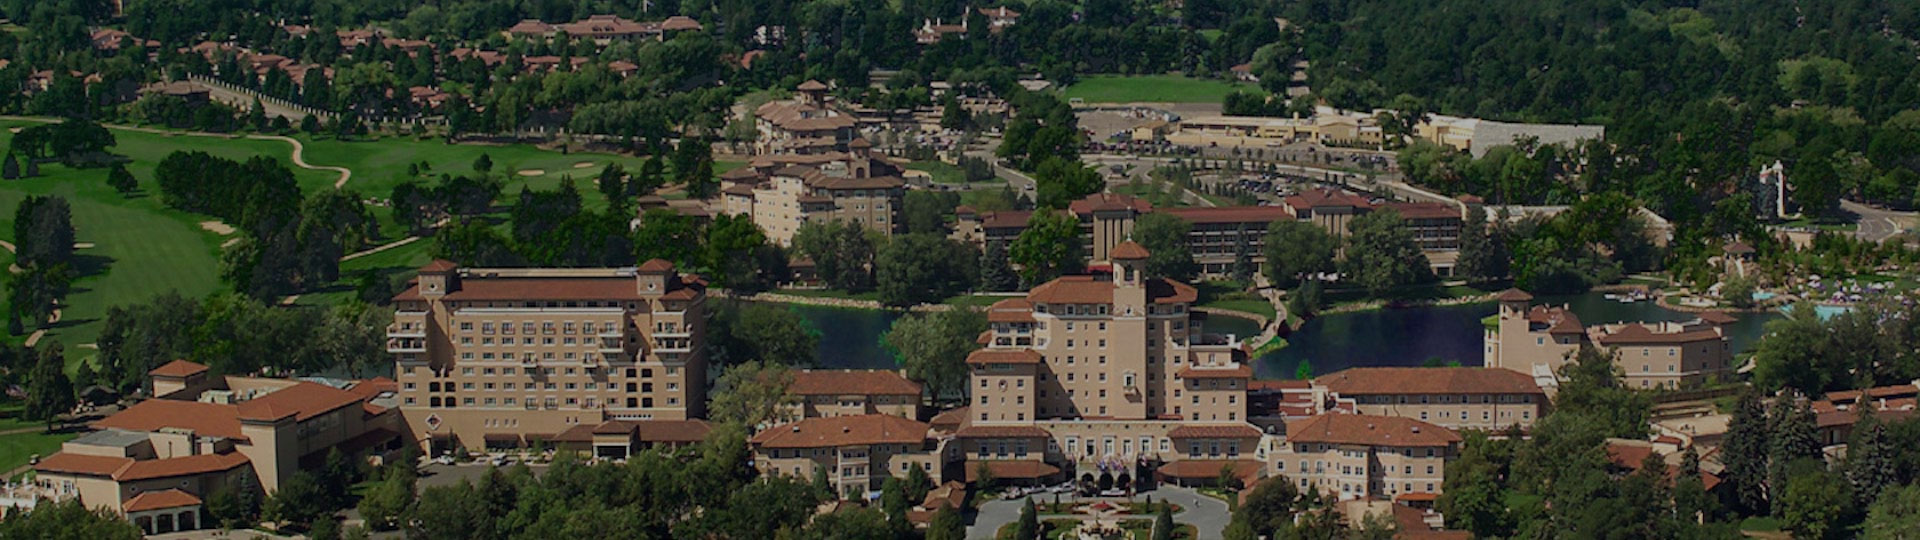 The Broadmoor Resort